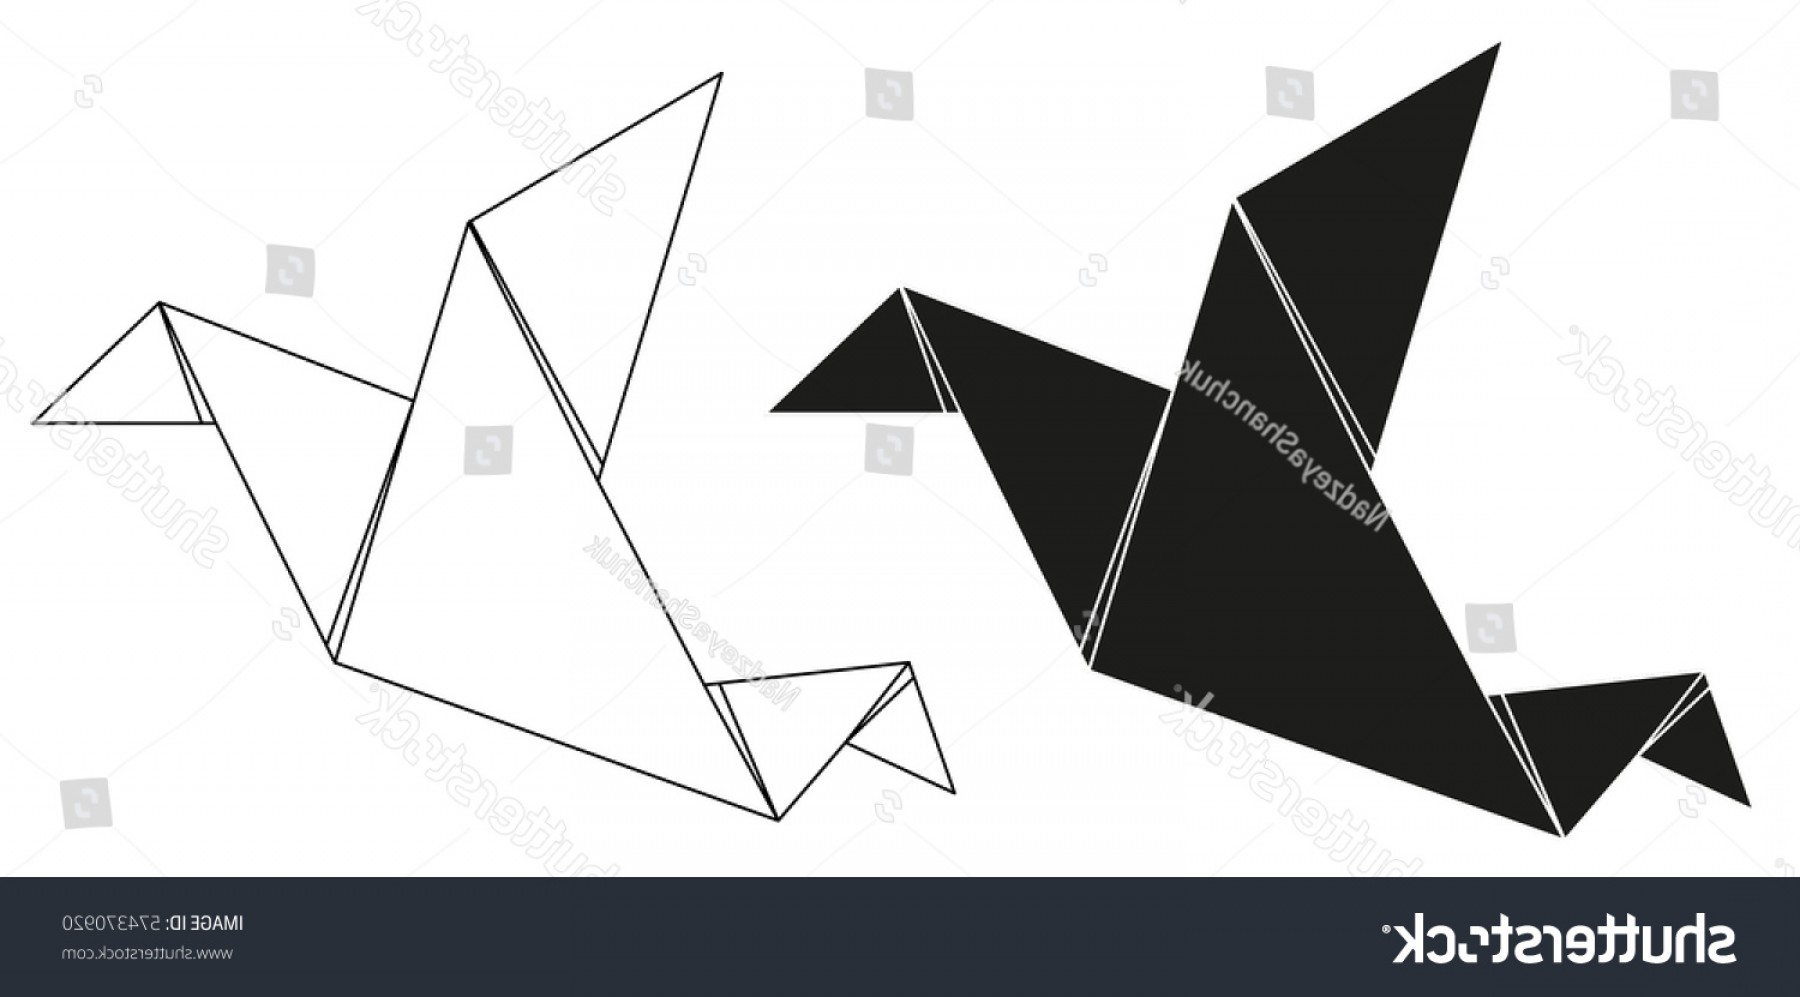 1800x997 Vector Isolated Silhouette Origami Crane Contours Lazttweet